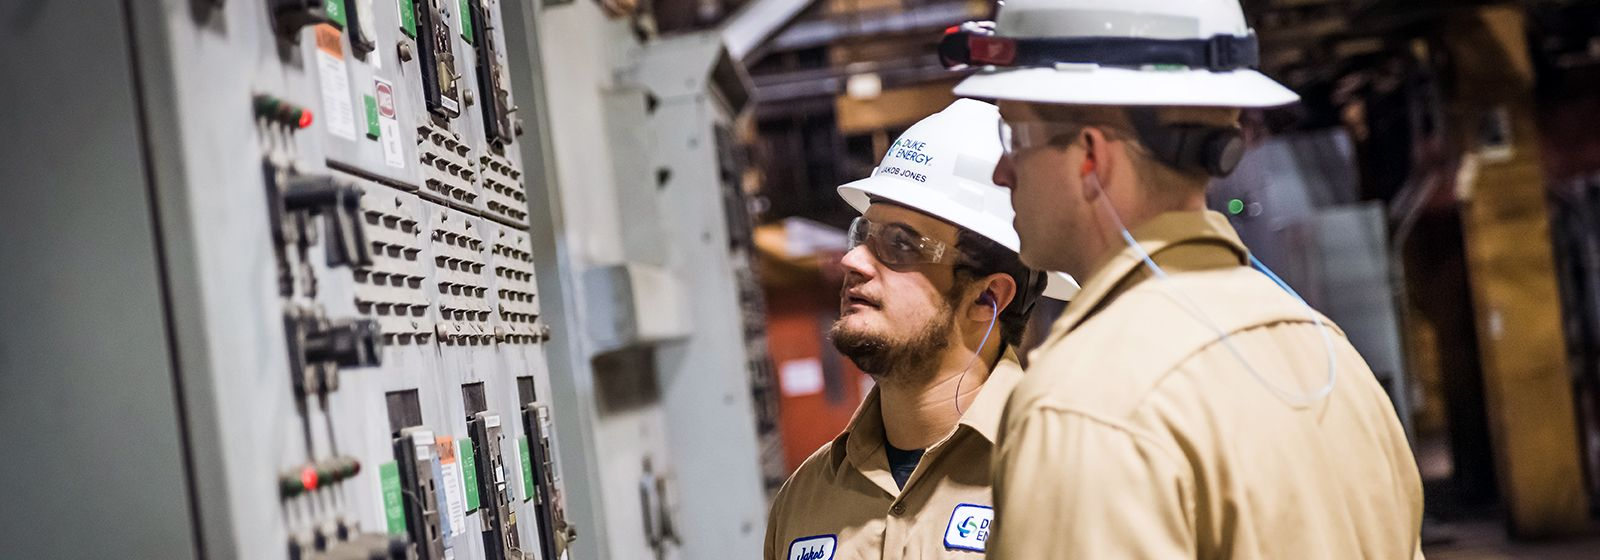 Interested in engineering? Consider power plant operations